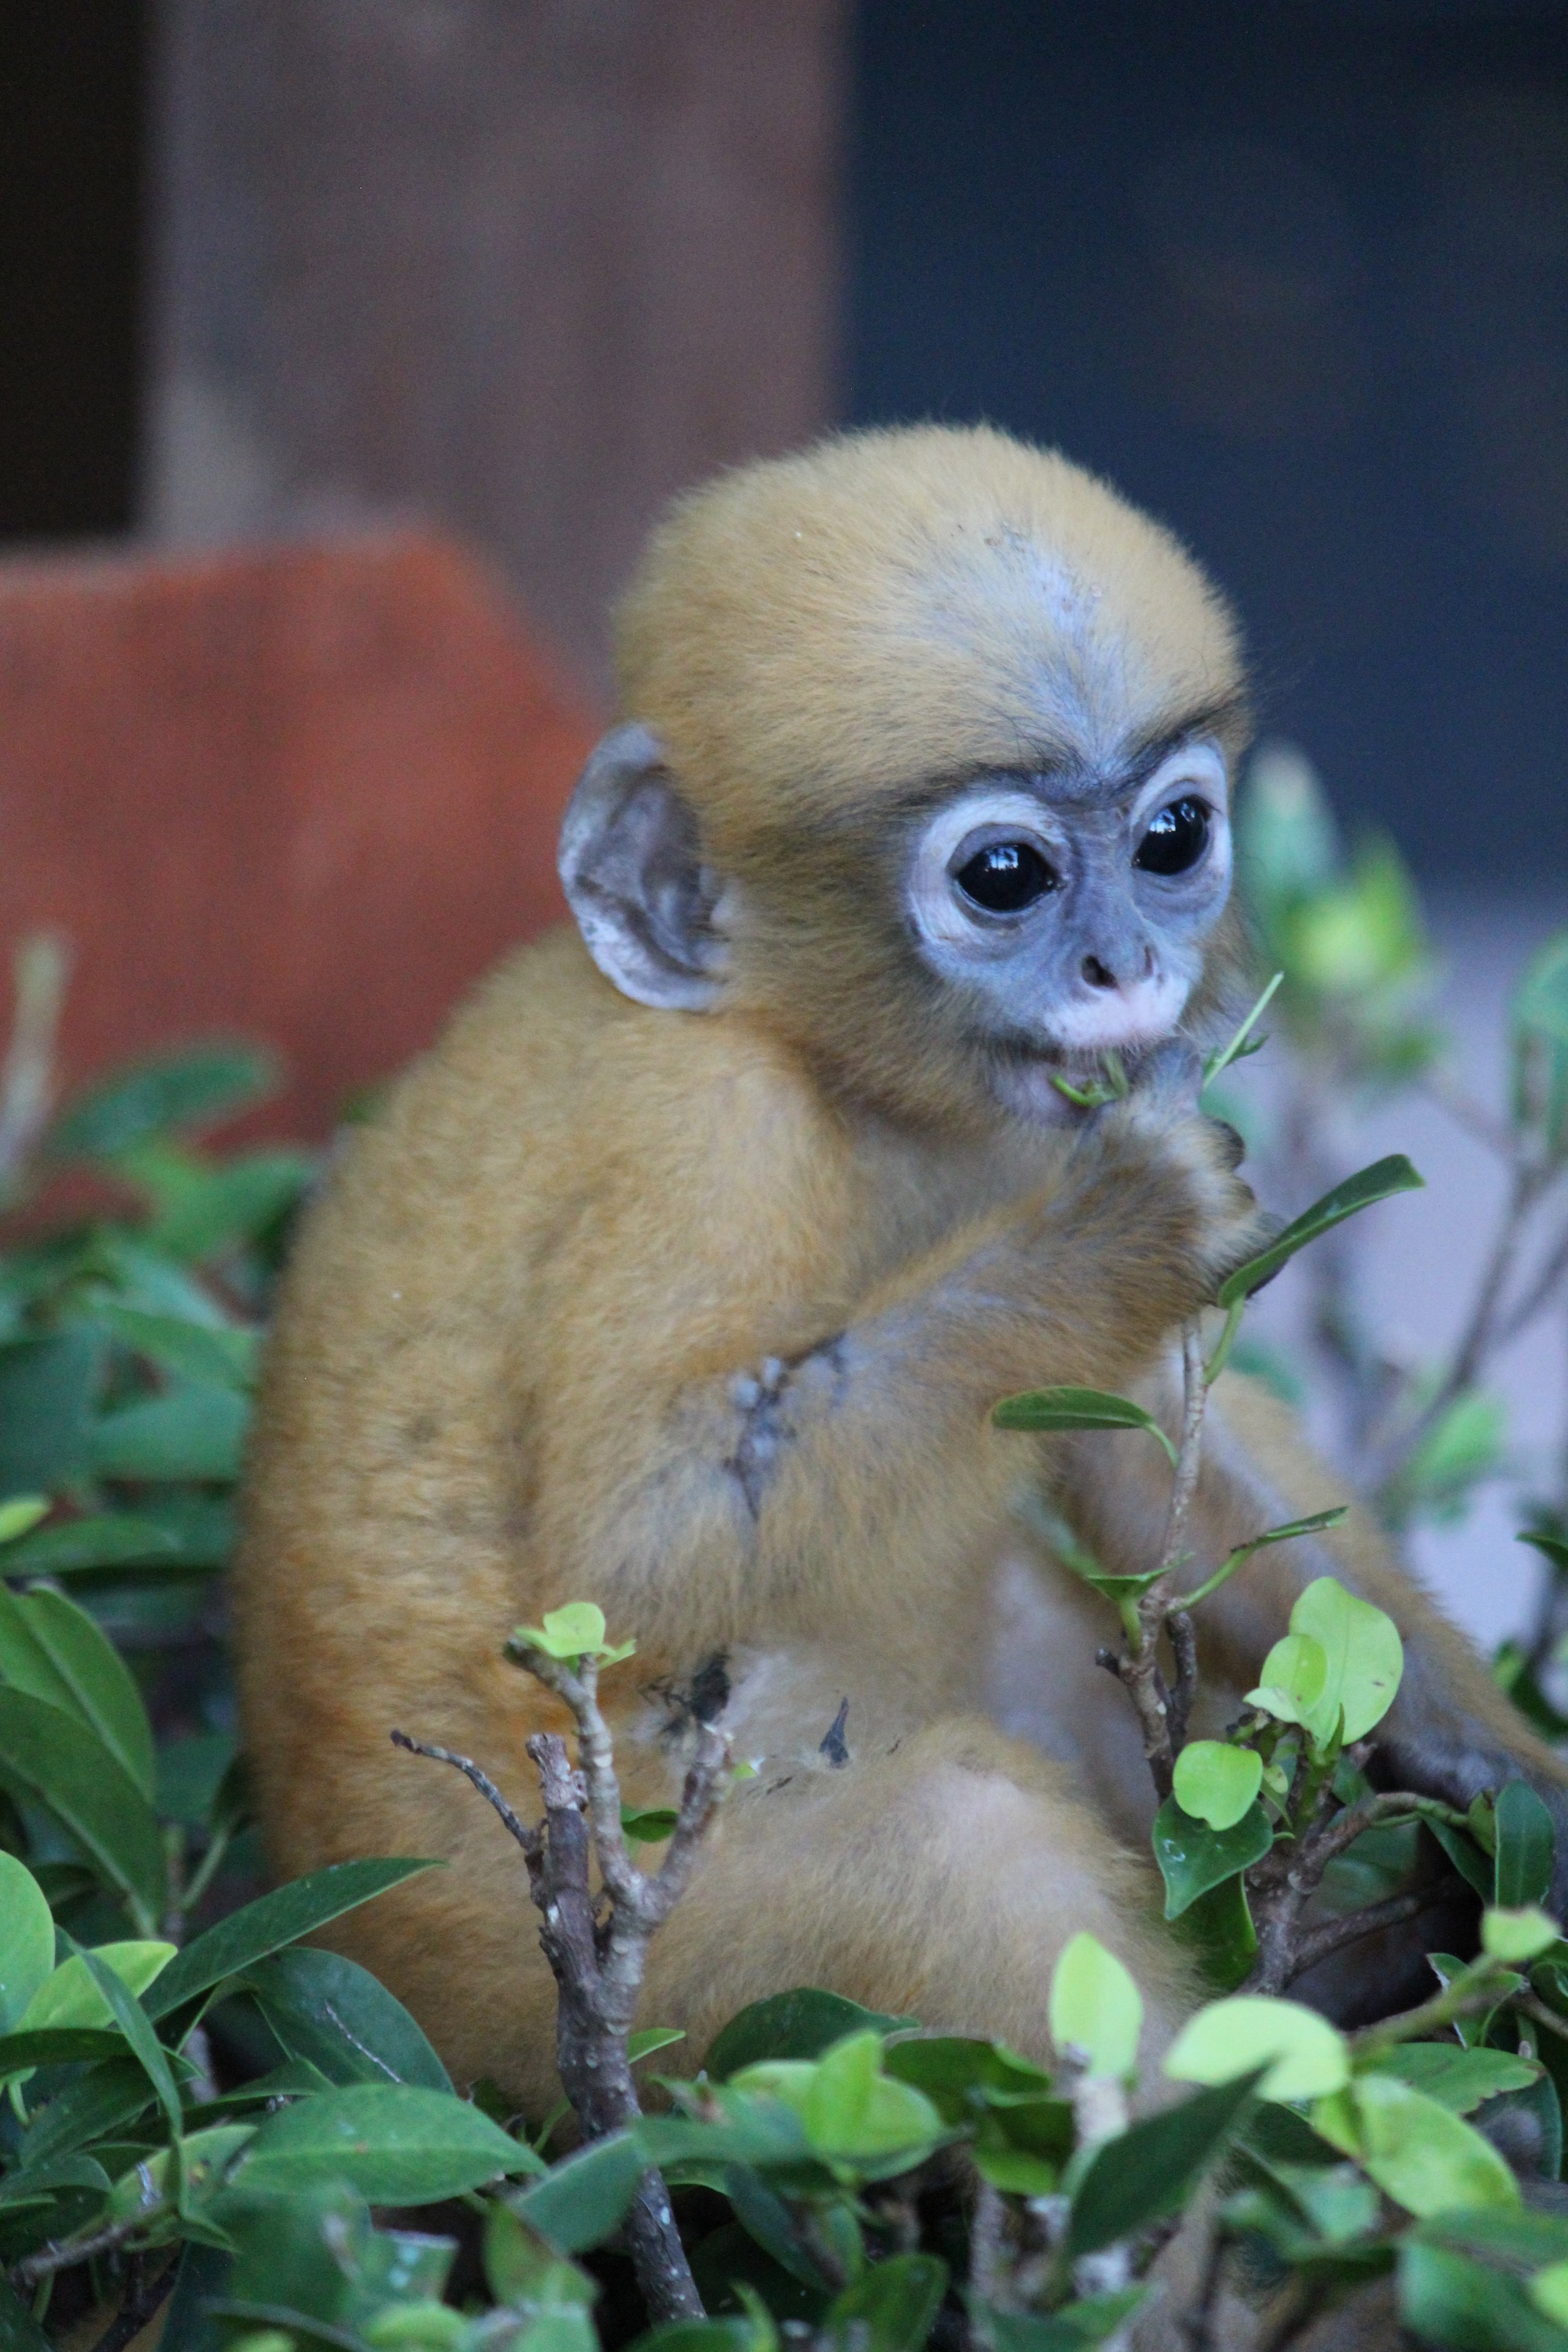 Come for the beach, stay to gawk at leaf monkey babies